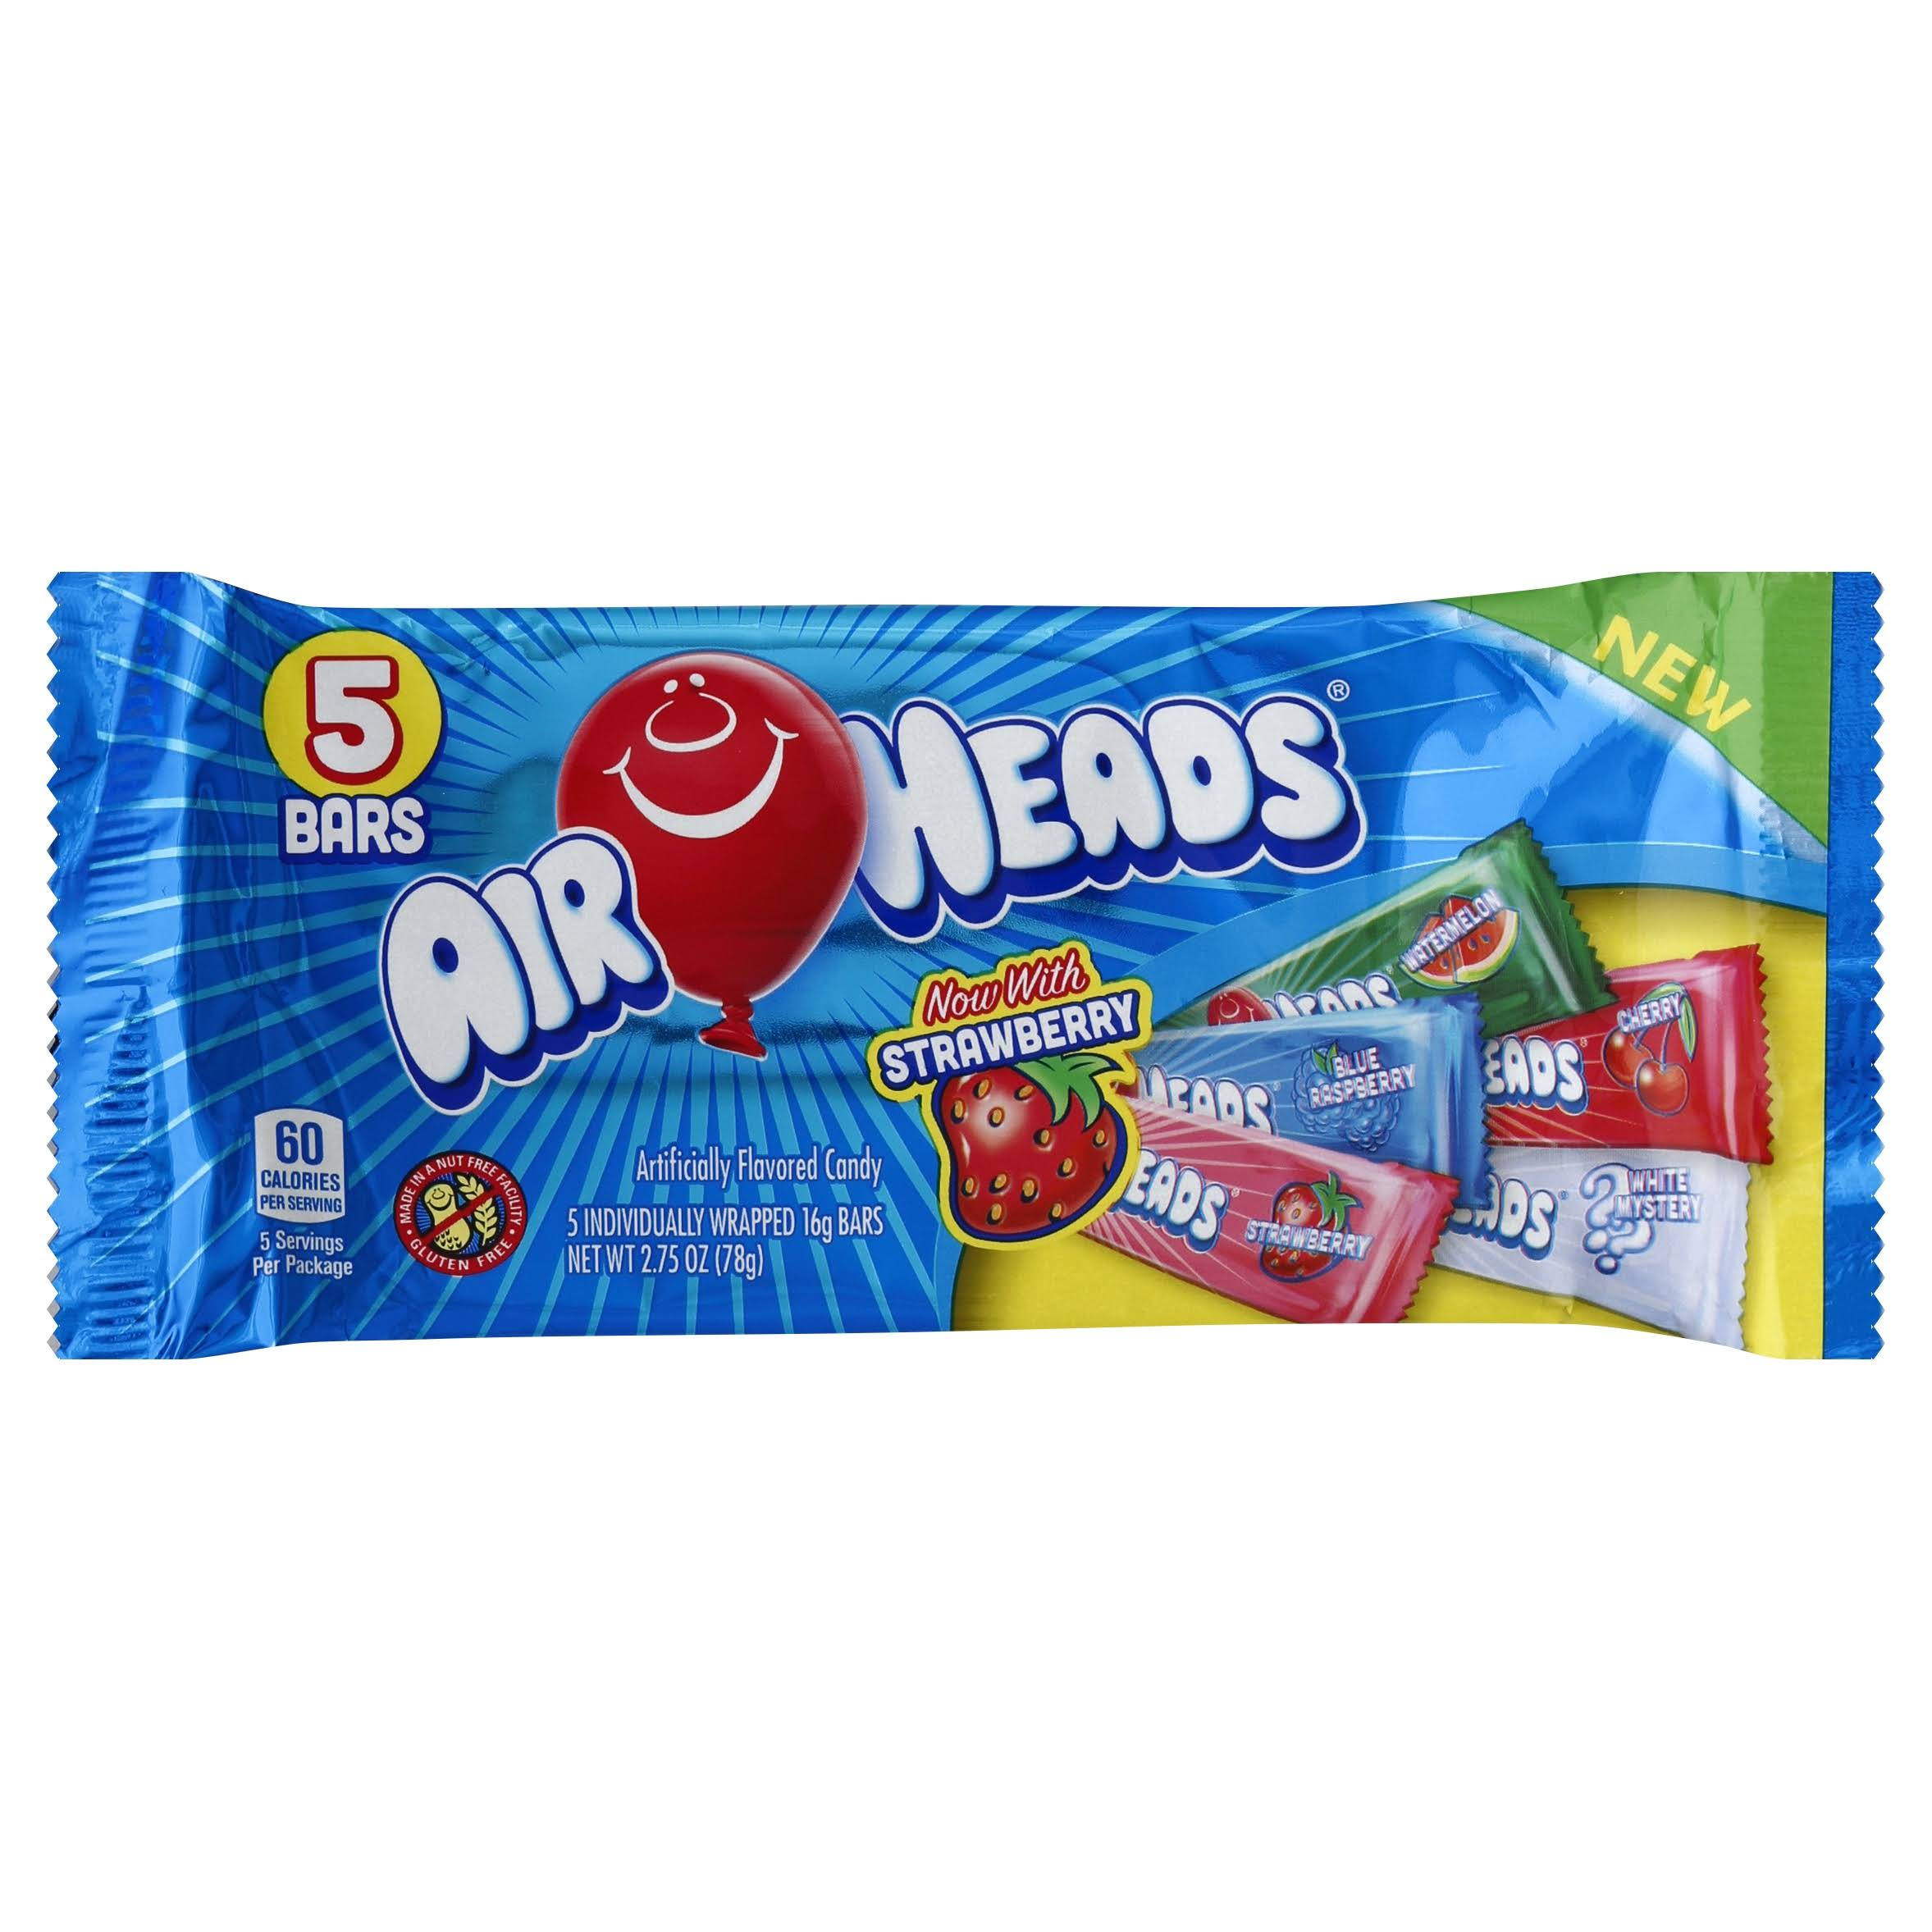 Airheads Candy - 5 pack, 16 g bars